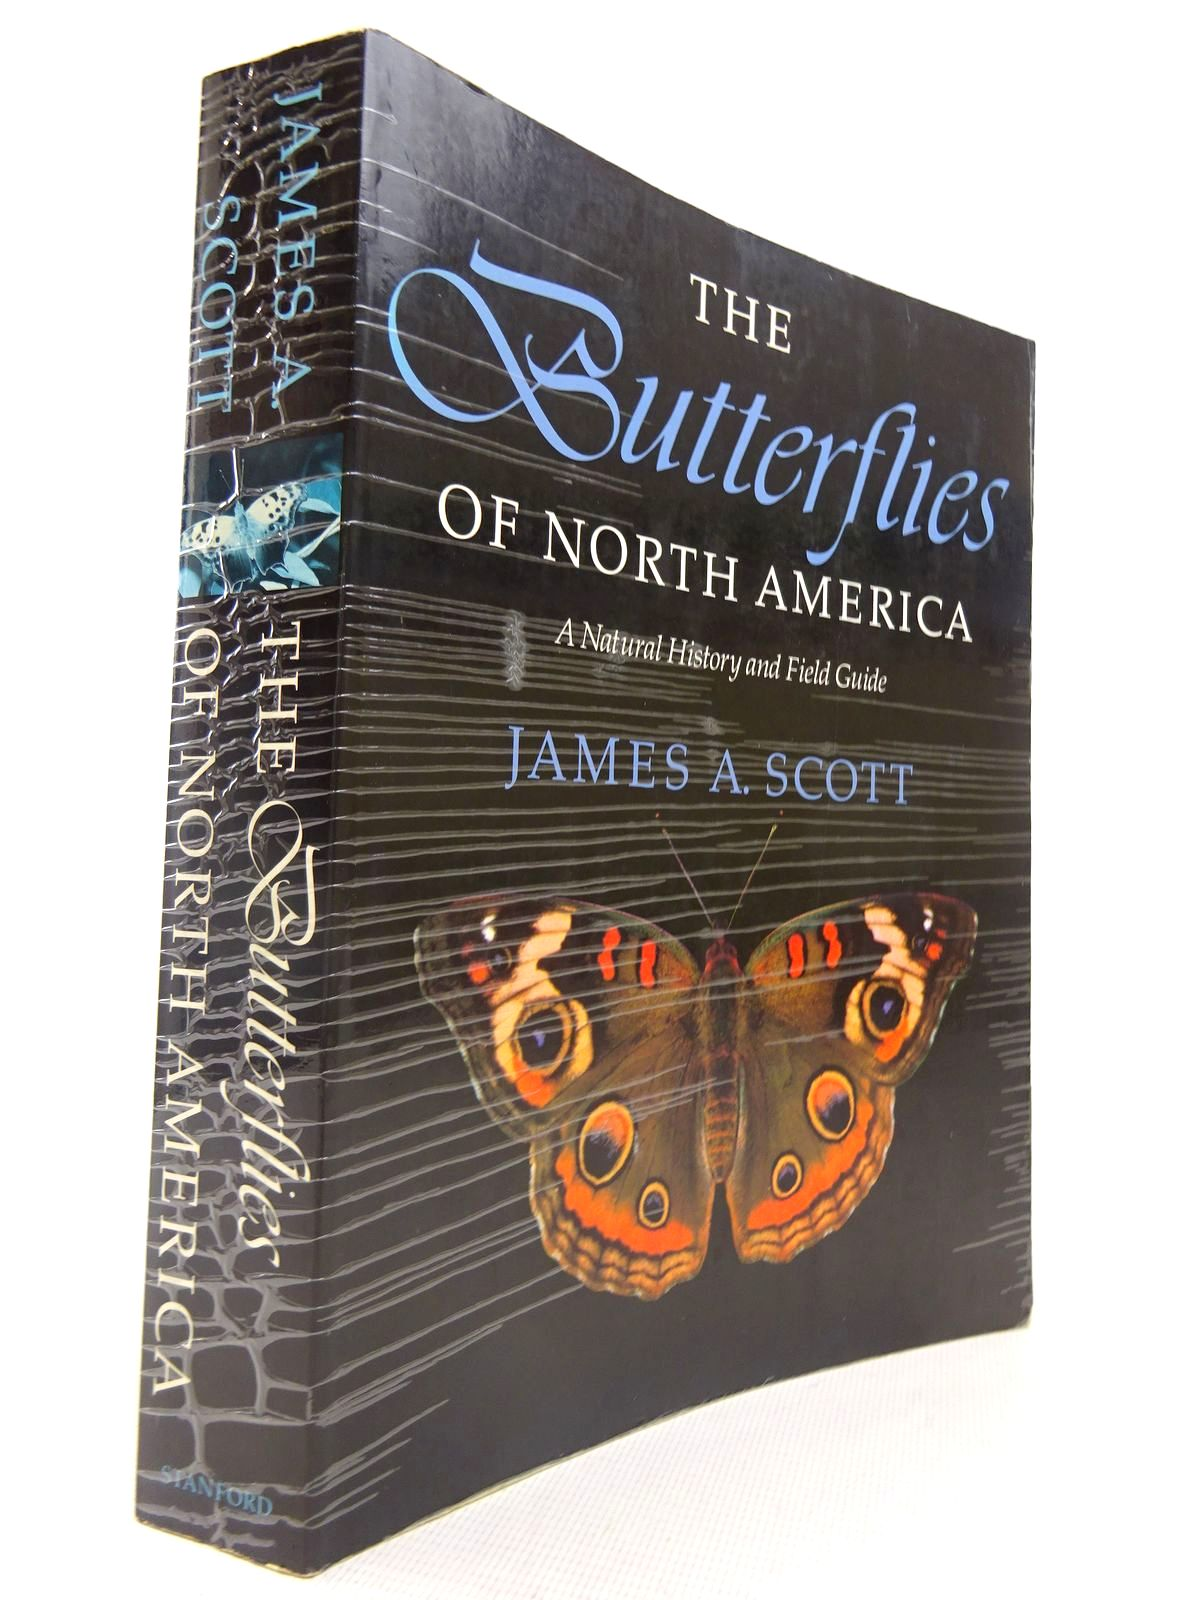 Photo of THE BUTTERFLIES OF NORTH AMERICA: A NATURAL HISTORY AND FIELD GUIDE written by Scott, James A. published by Stanford University Press (STOCK CODE: 1816664)  for sale by Stella & Rose's Books